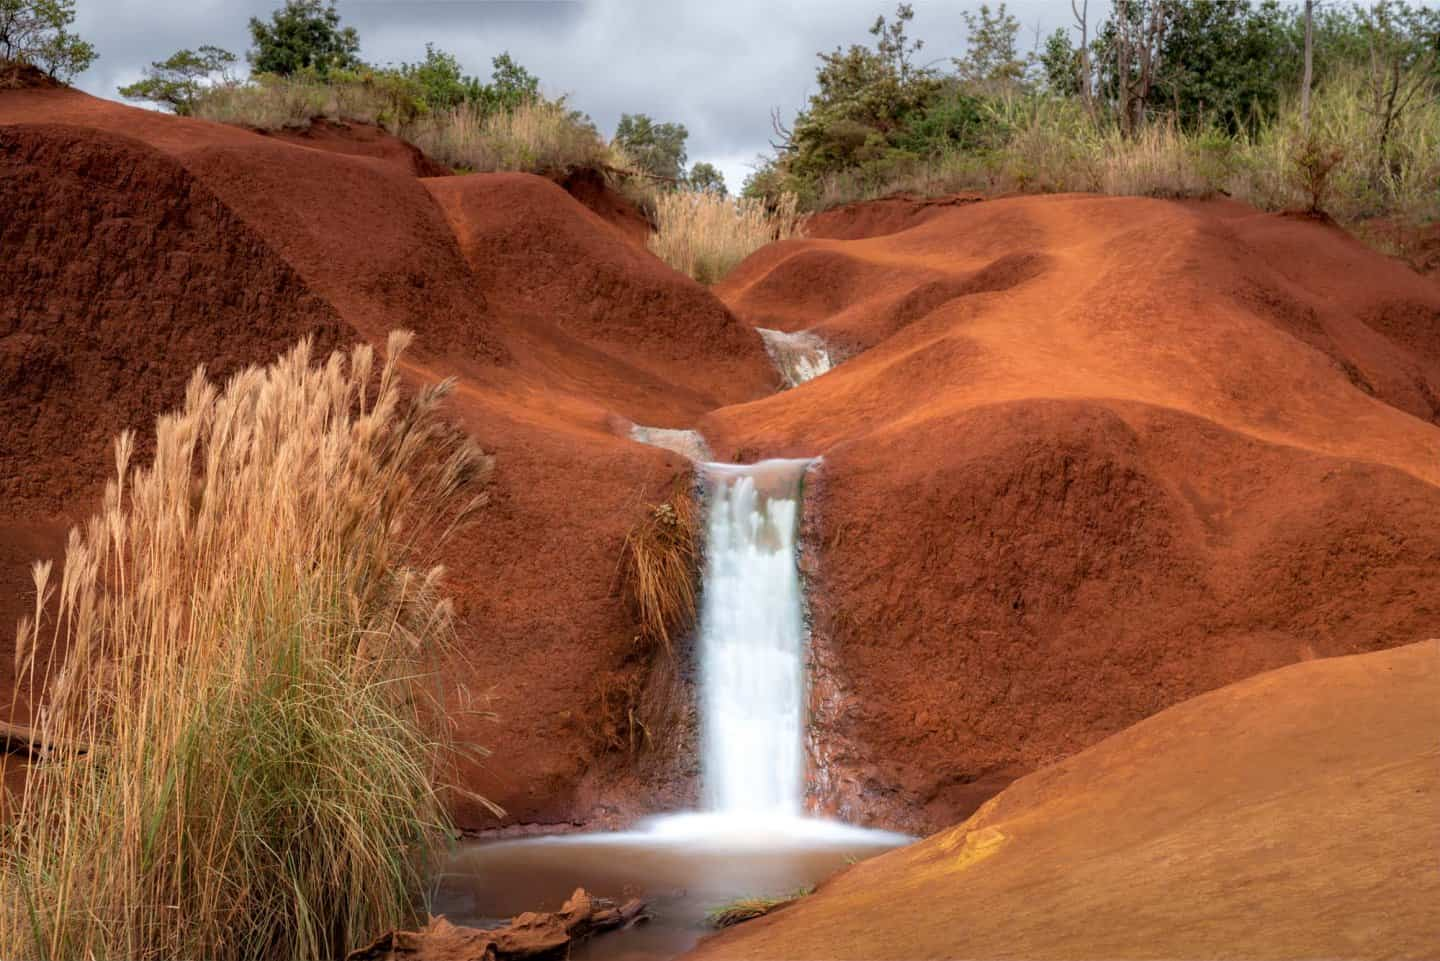 Long exposure Kauai landscape photography of a small waterfall flowing through the famous red dirt of Kauai.